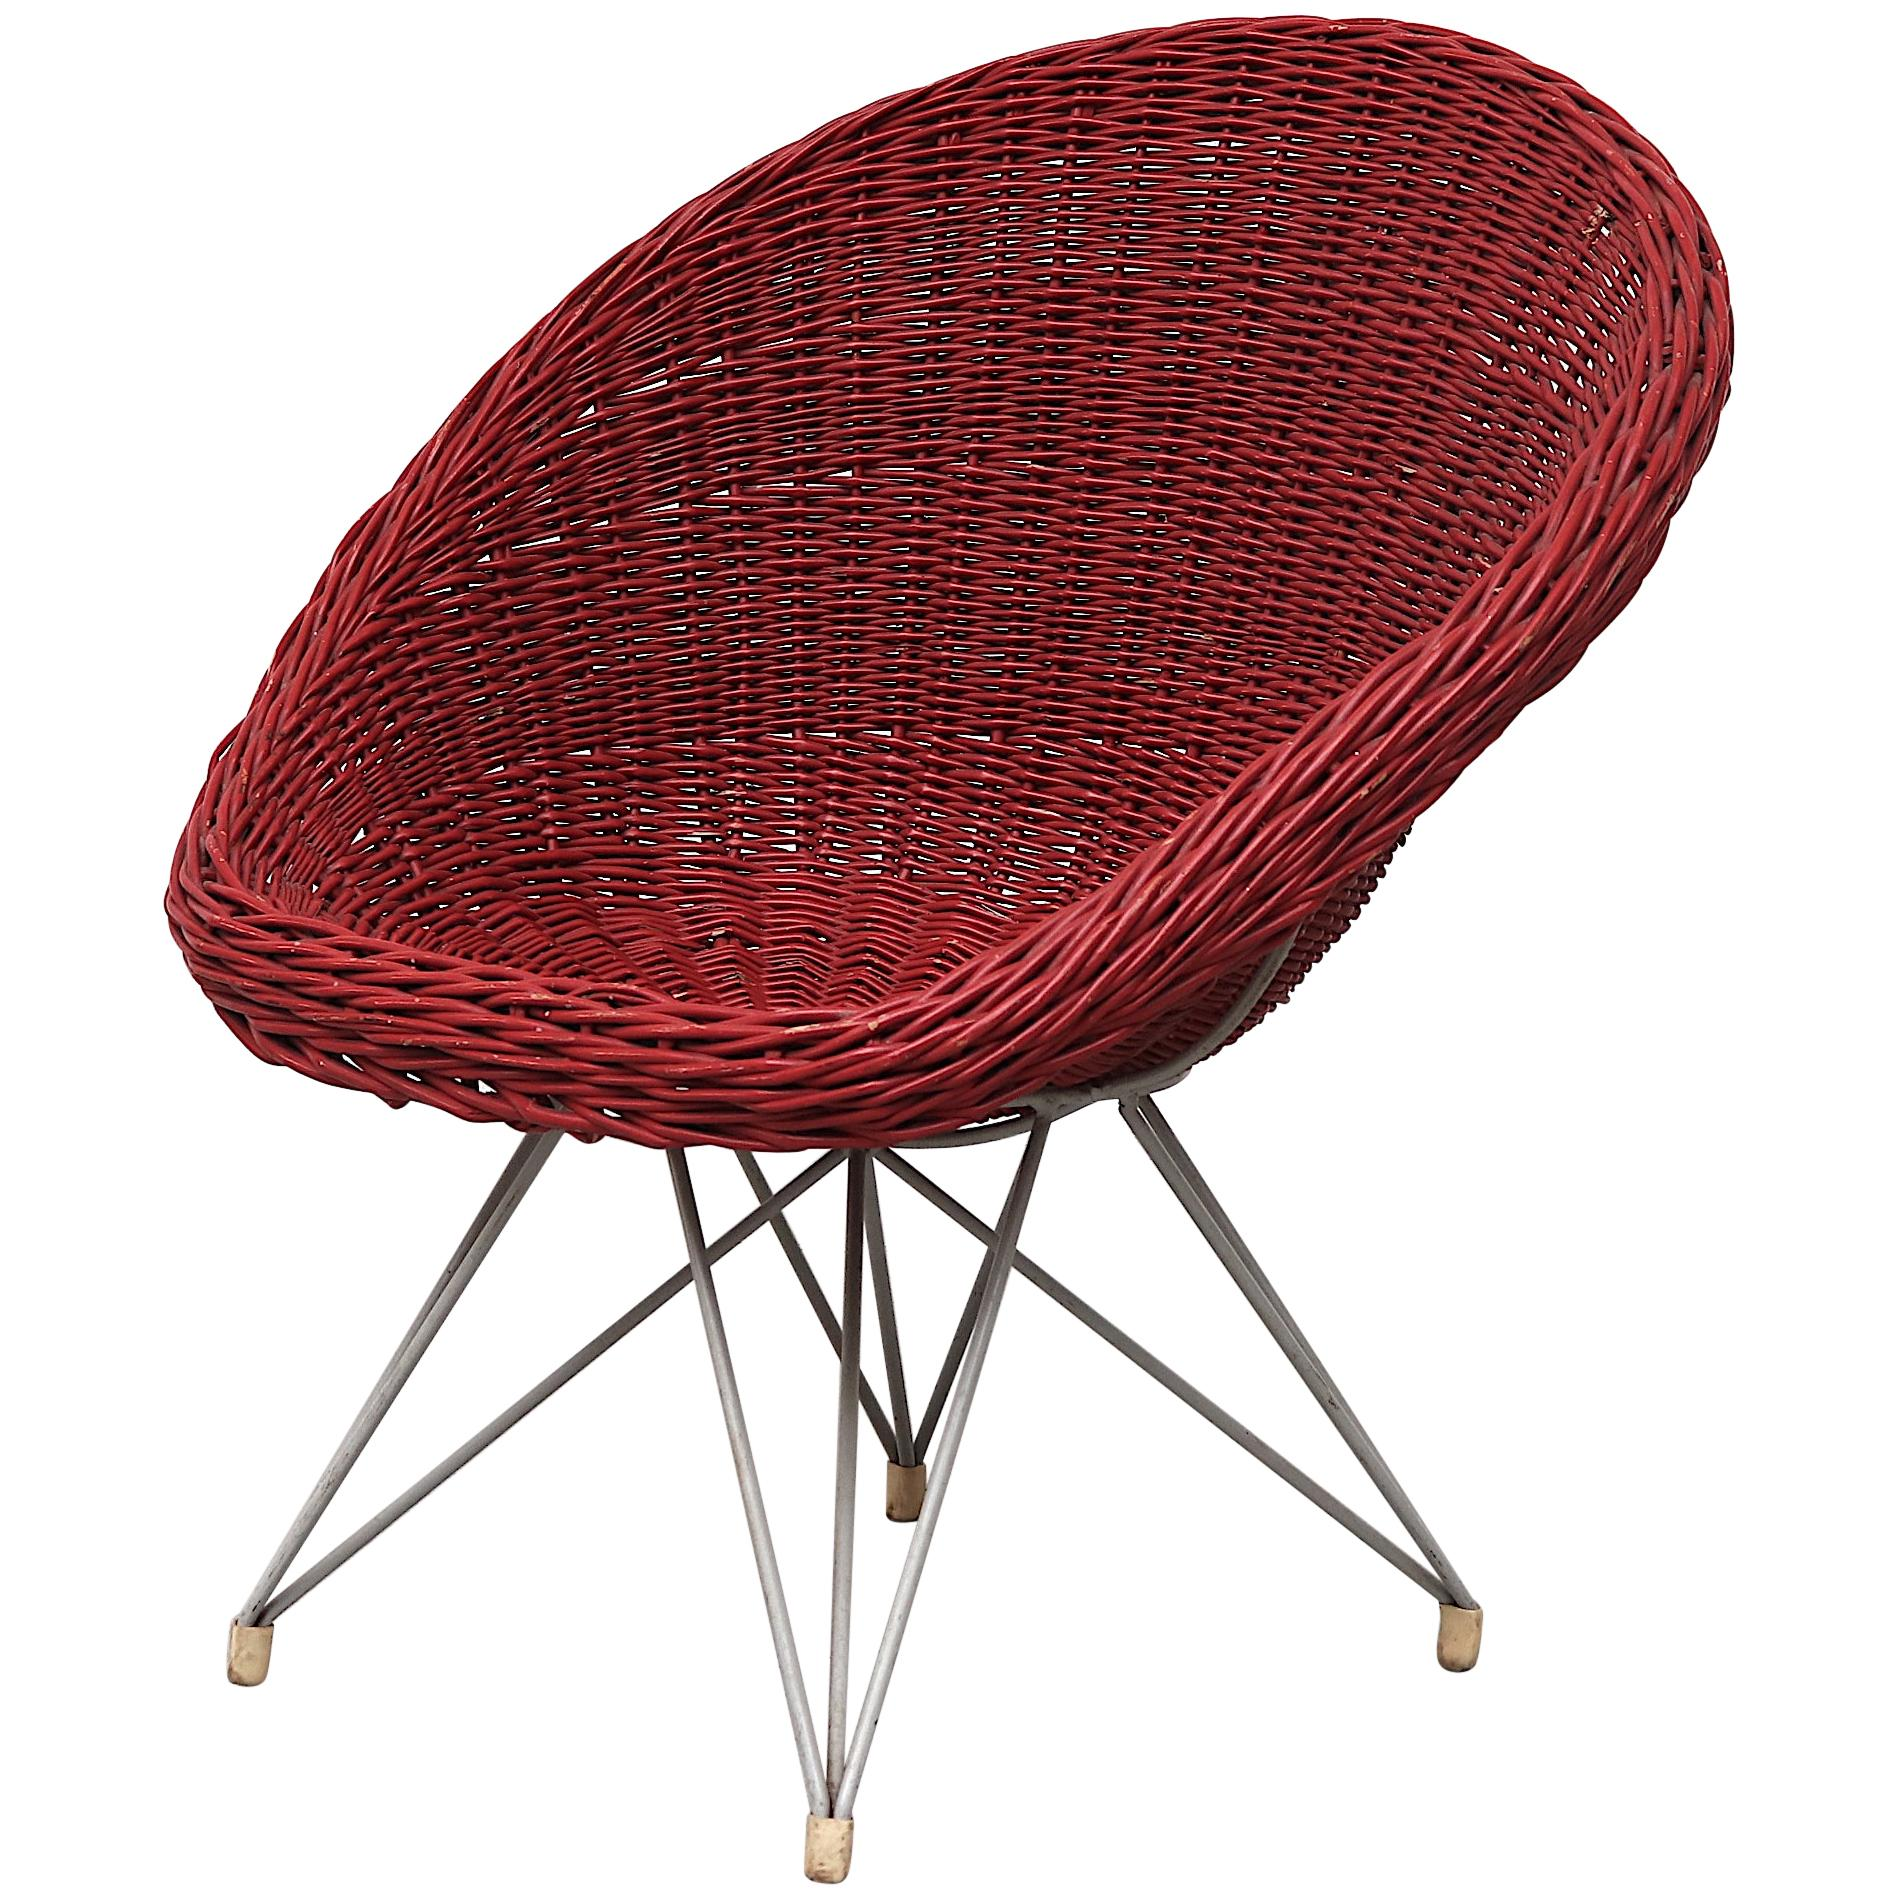 Red Jacques Adnet Style Bamboo Hoop Chair by Teun Velthuizen for Urotan